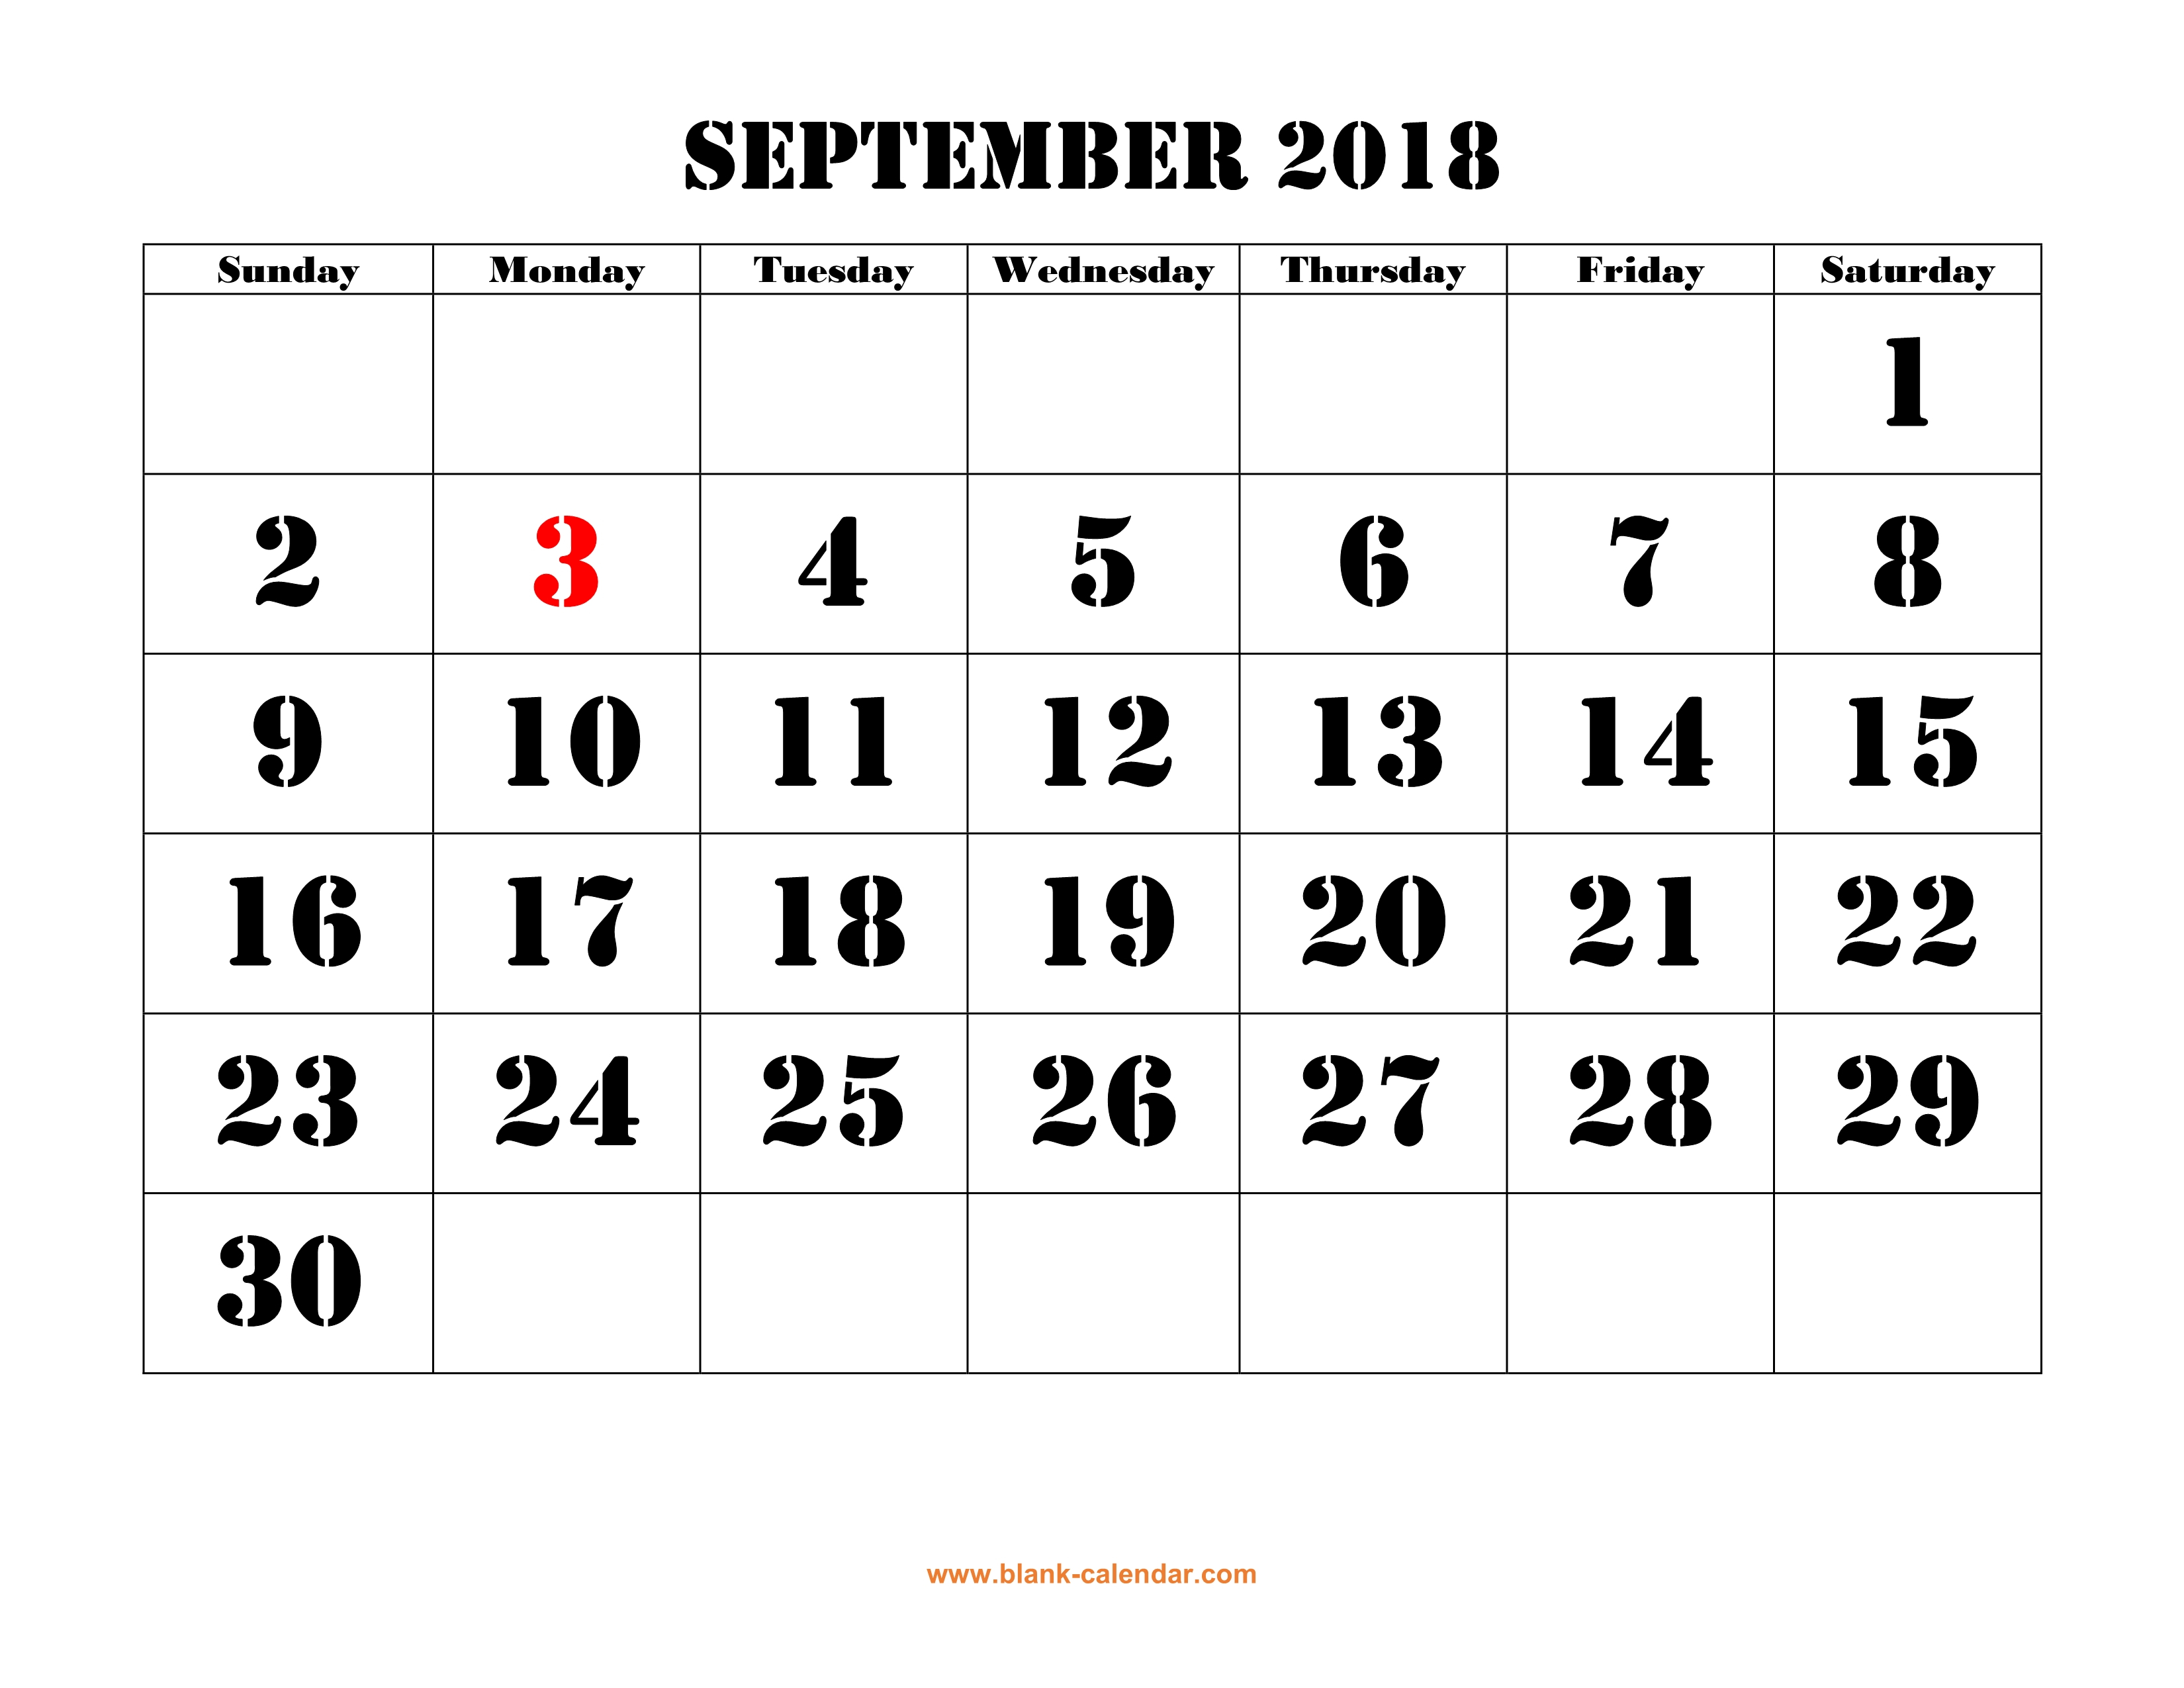 Free Download Printable September 2018 Calendar, Large Font Design in Blank September Calendar Printable With Holidays